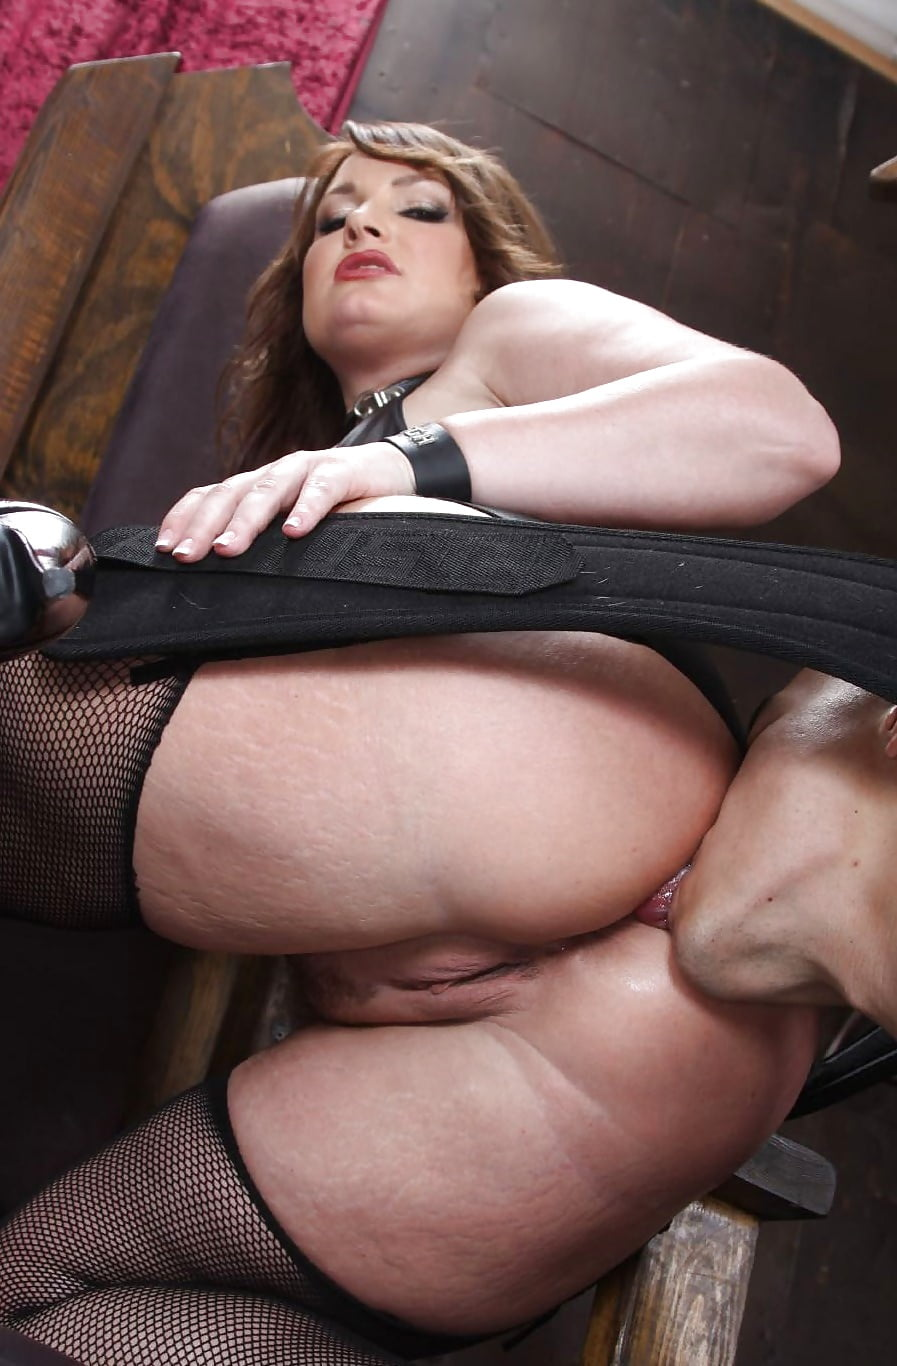 fat-girls-sex-torment-domination-lesbian-sex-in-underwear